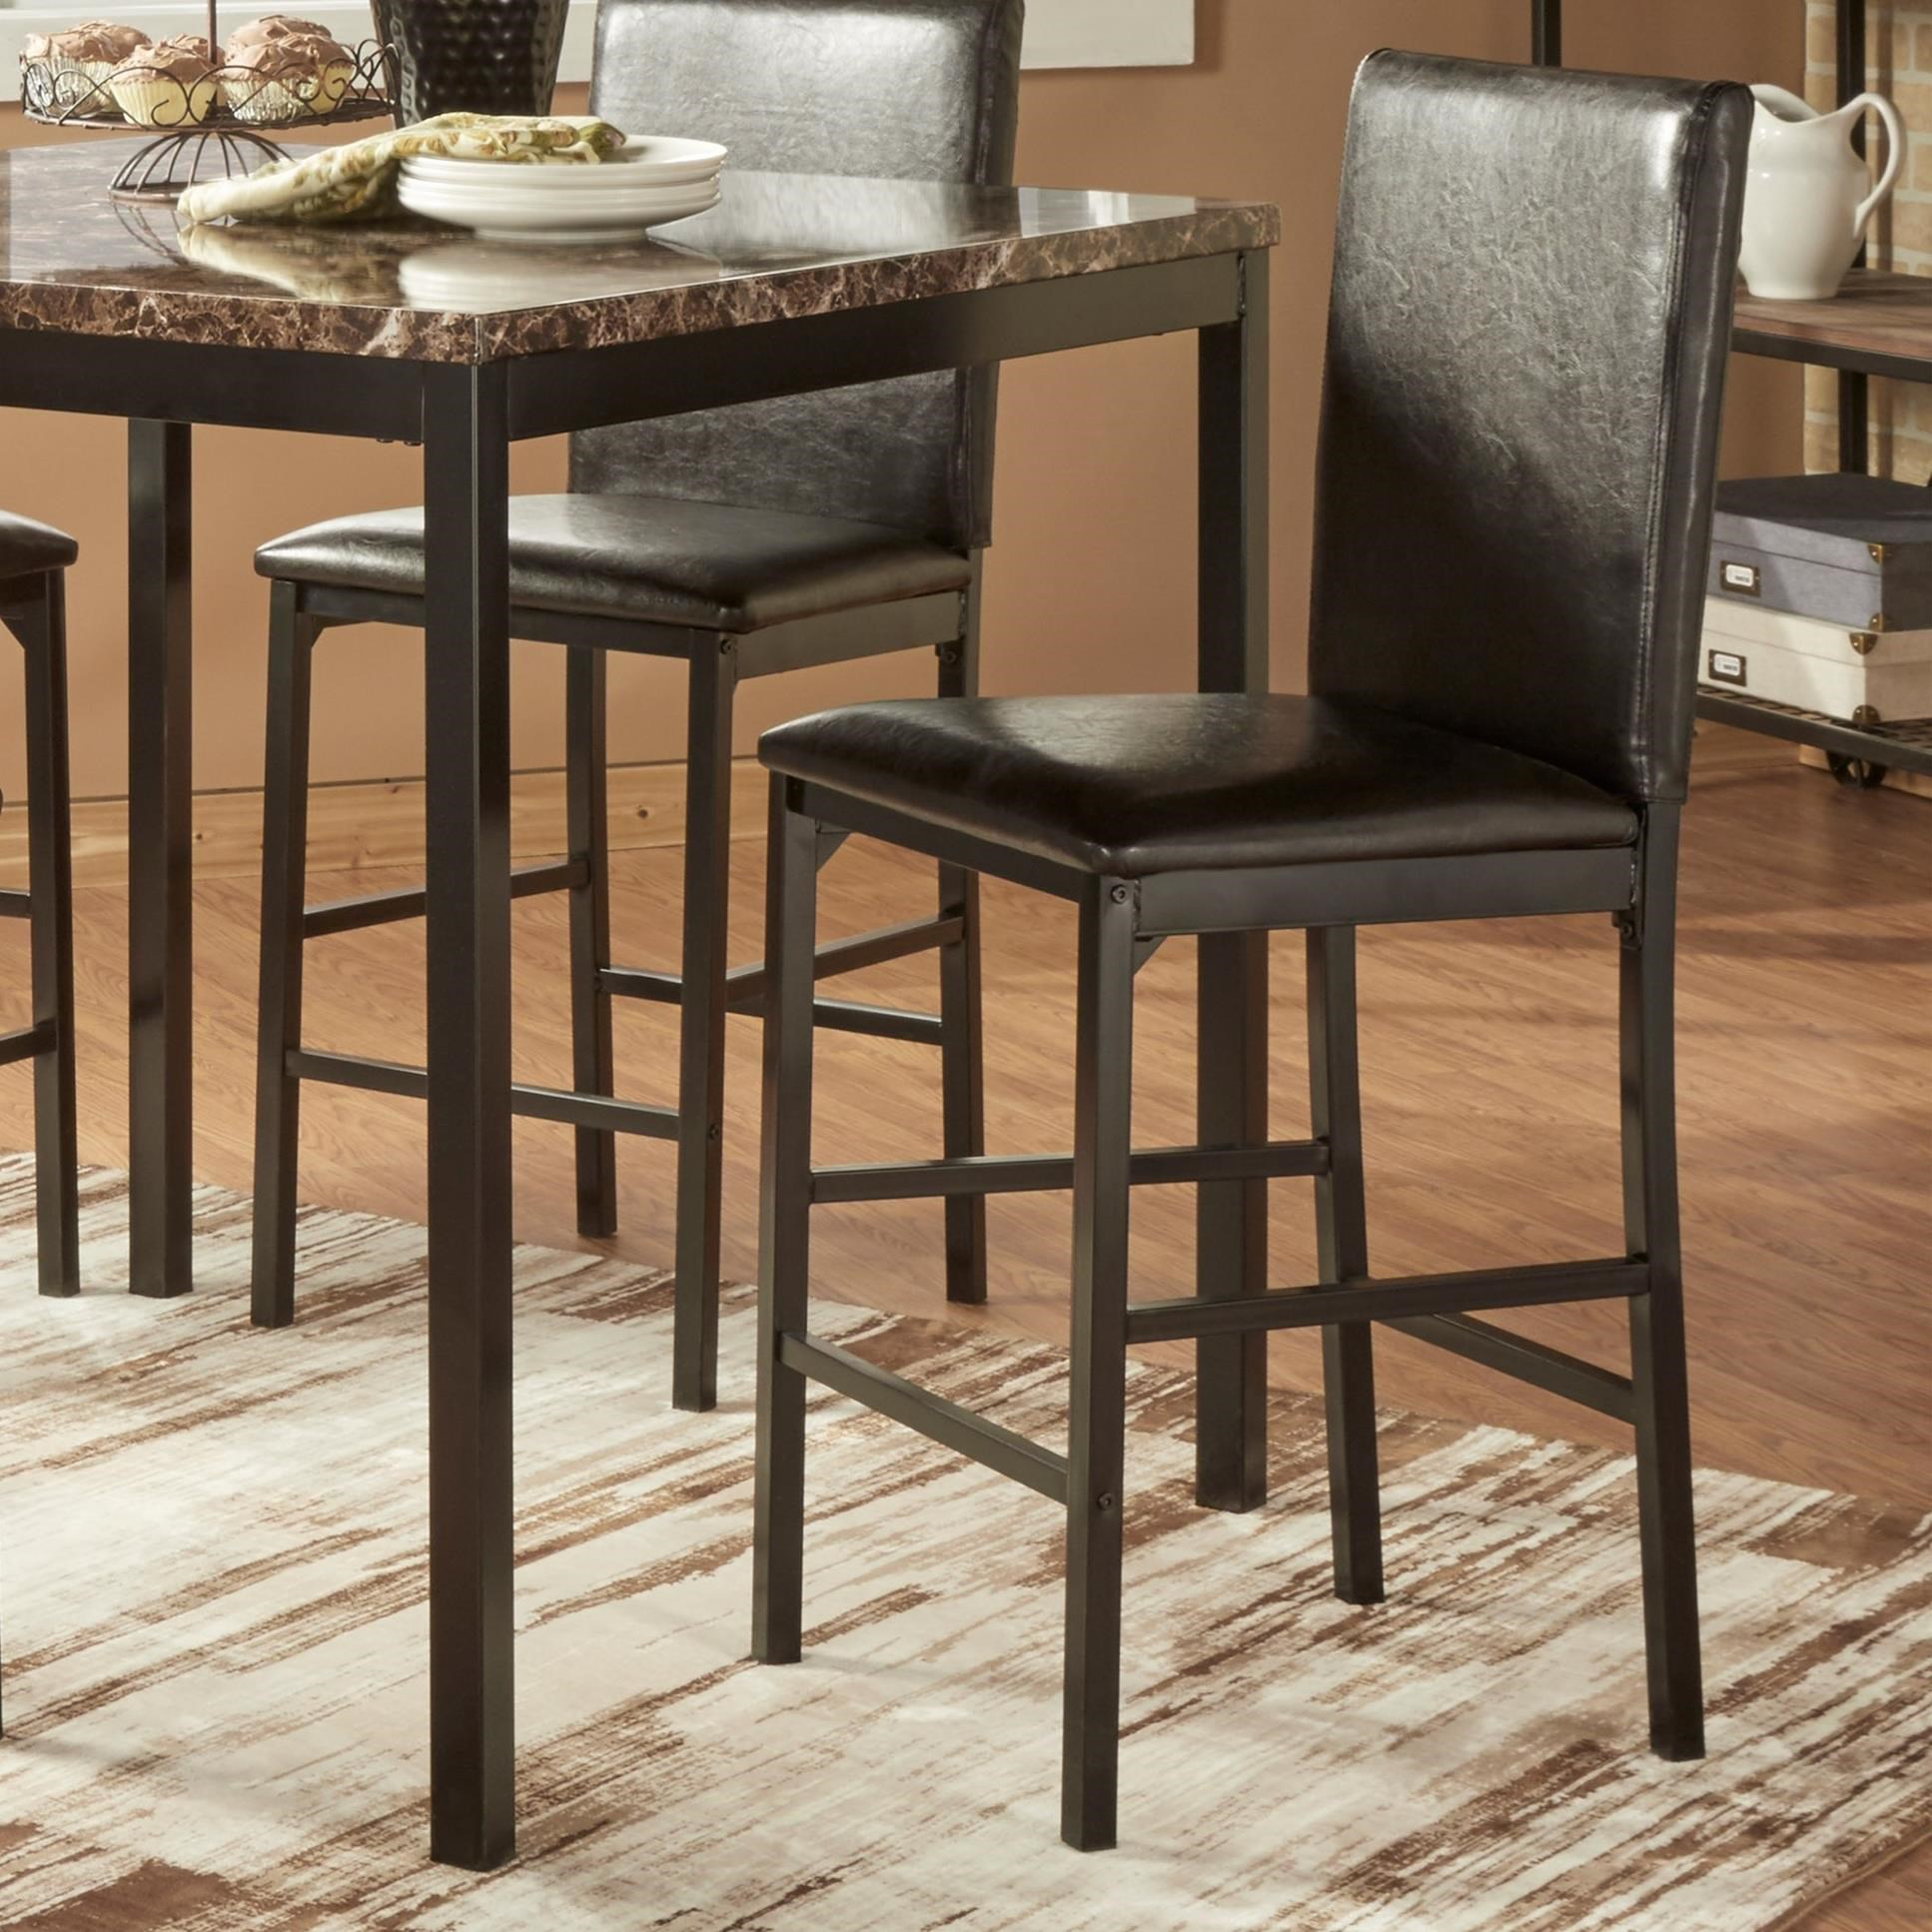 Value City Furniture Dining Room Chairs